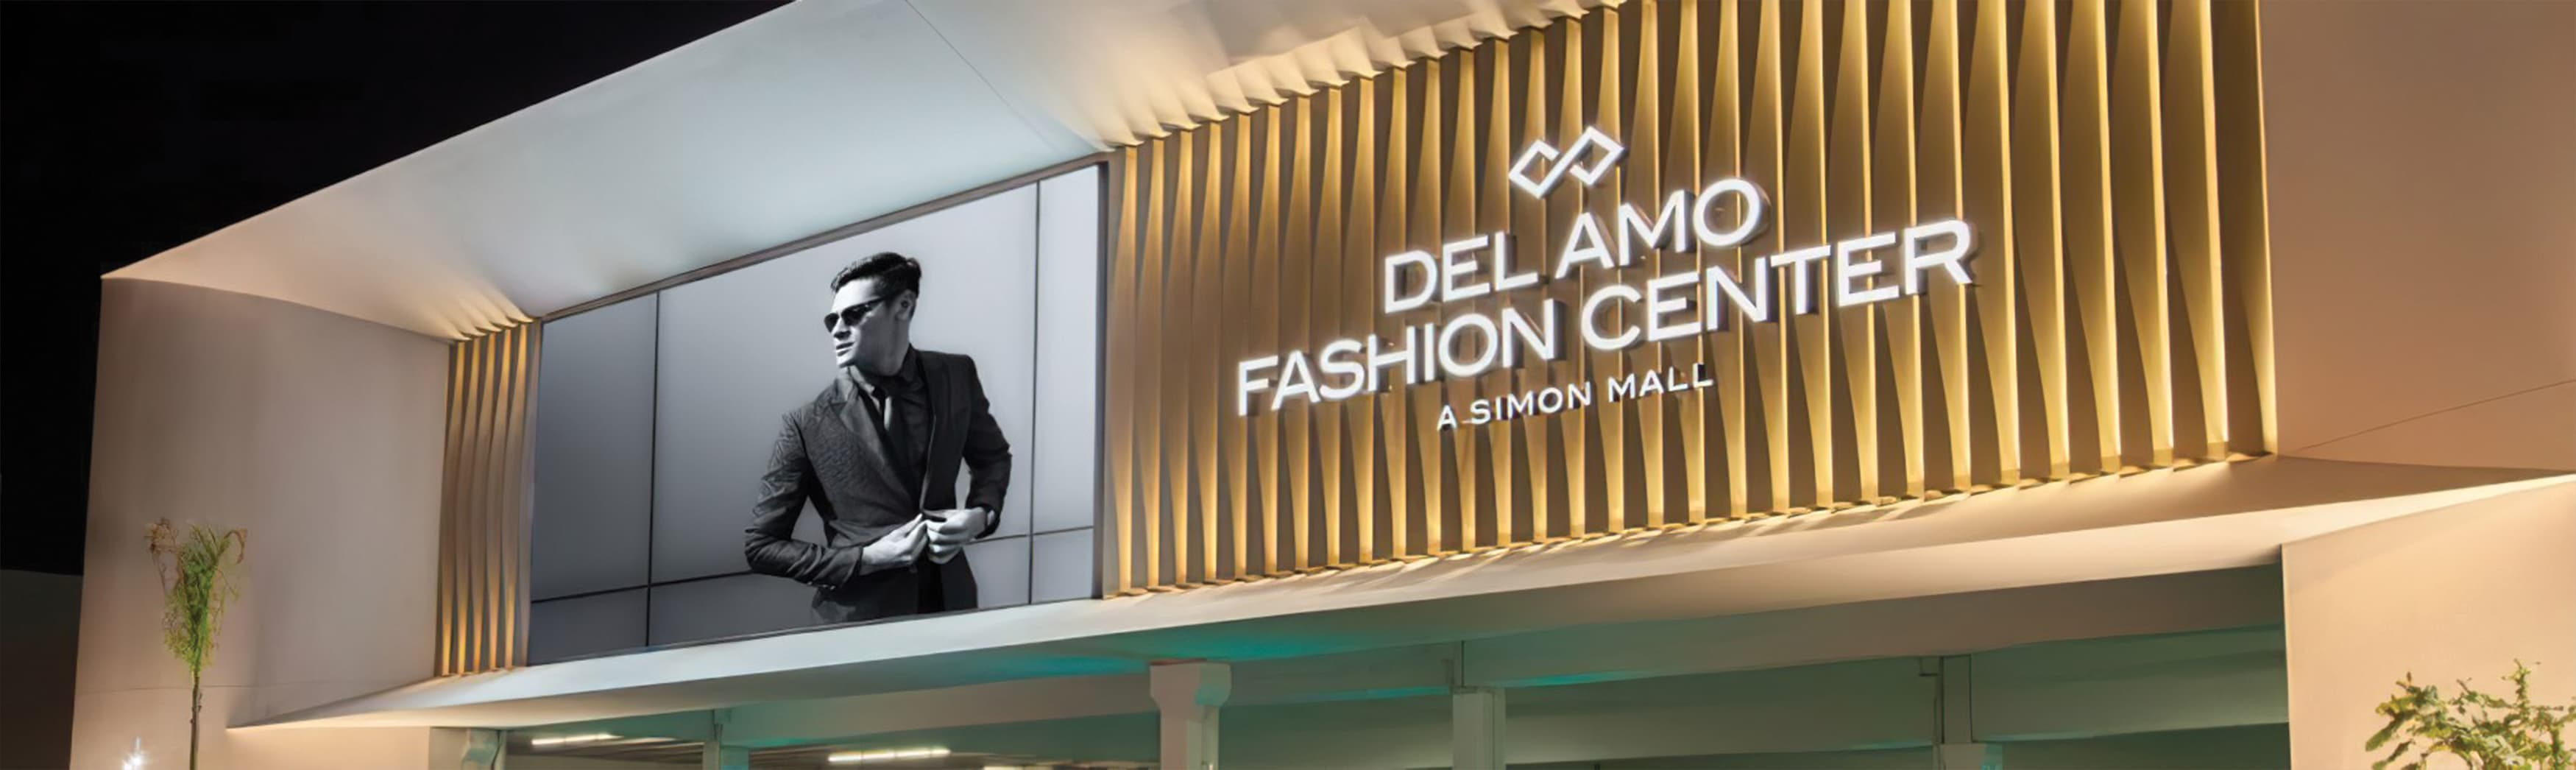 A nighttime image featuring an illuminated channel letter sign and a lifestyle graphic, both mounted on an architectural facade at Del Amo Fashion Center.